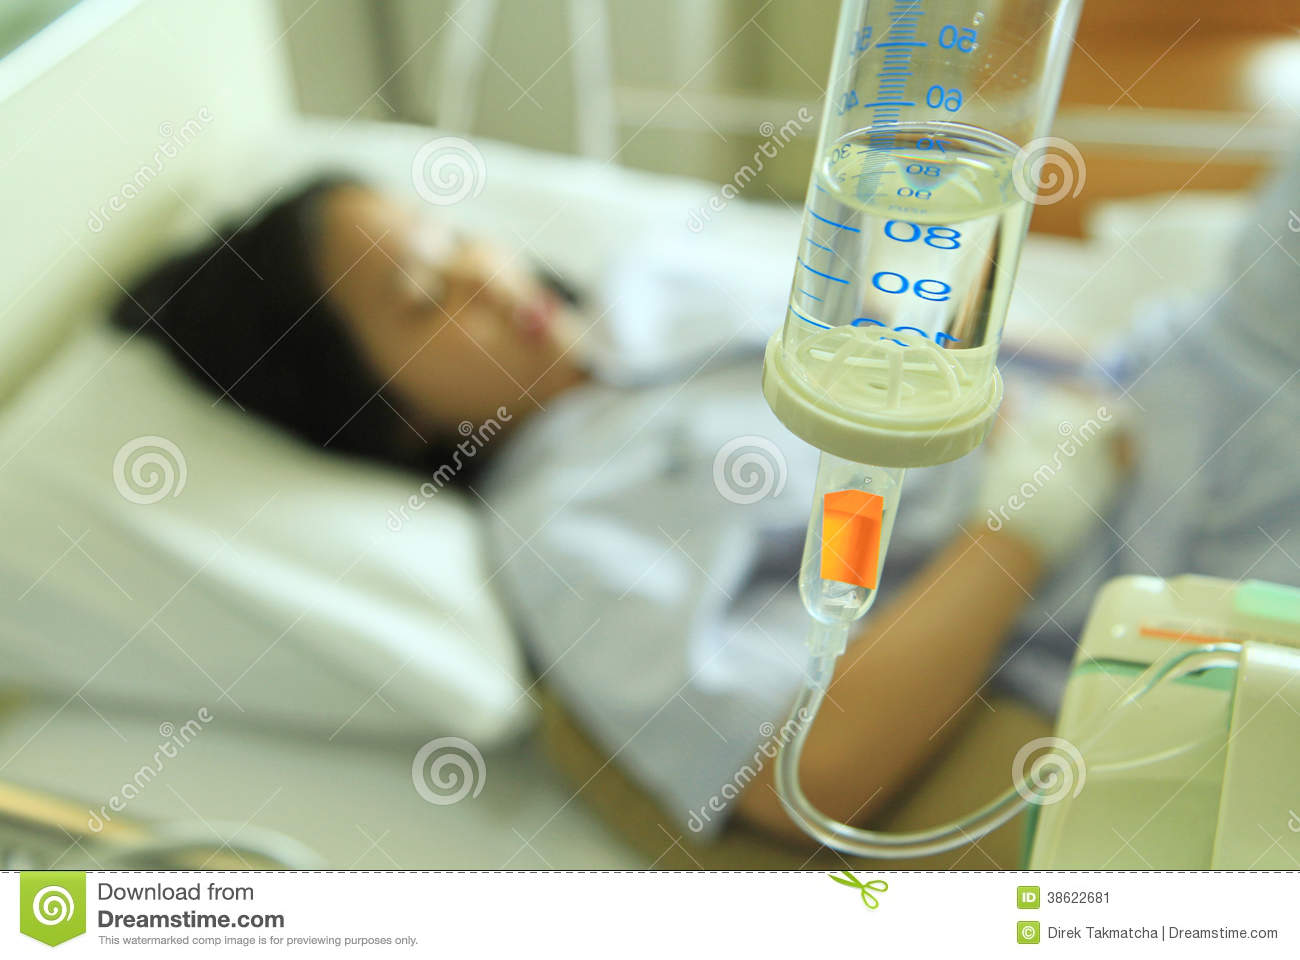 Woman Patient On Hospital Bed Stock Image - Image: 38622681